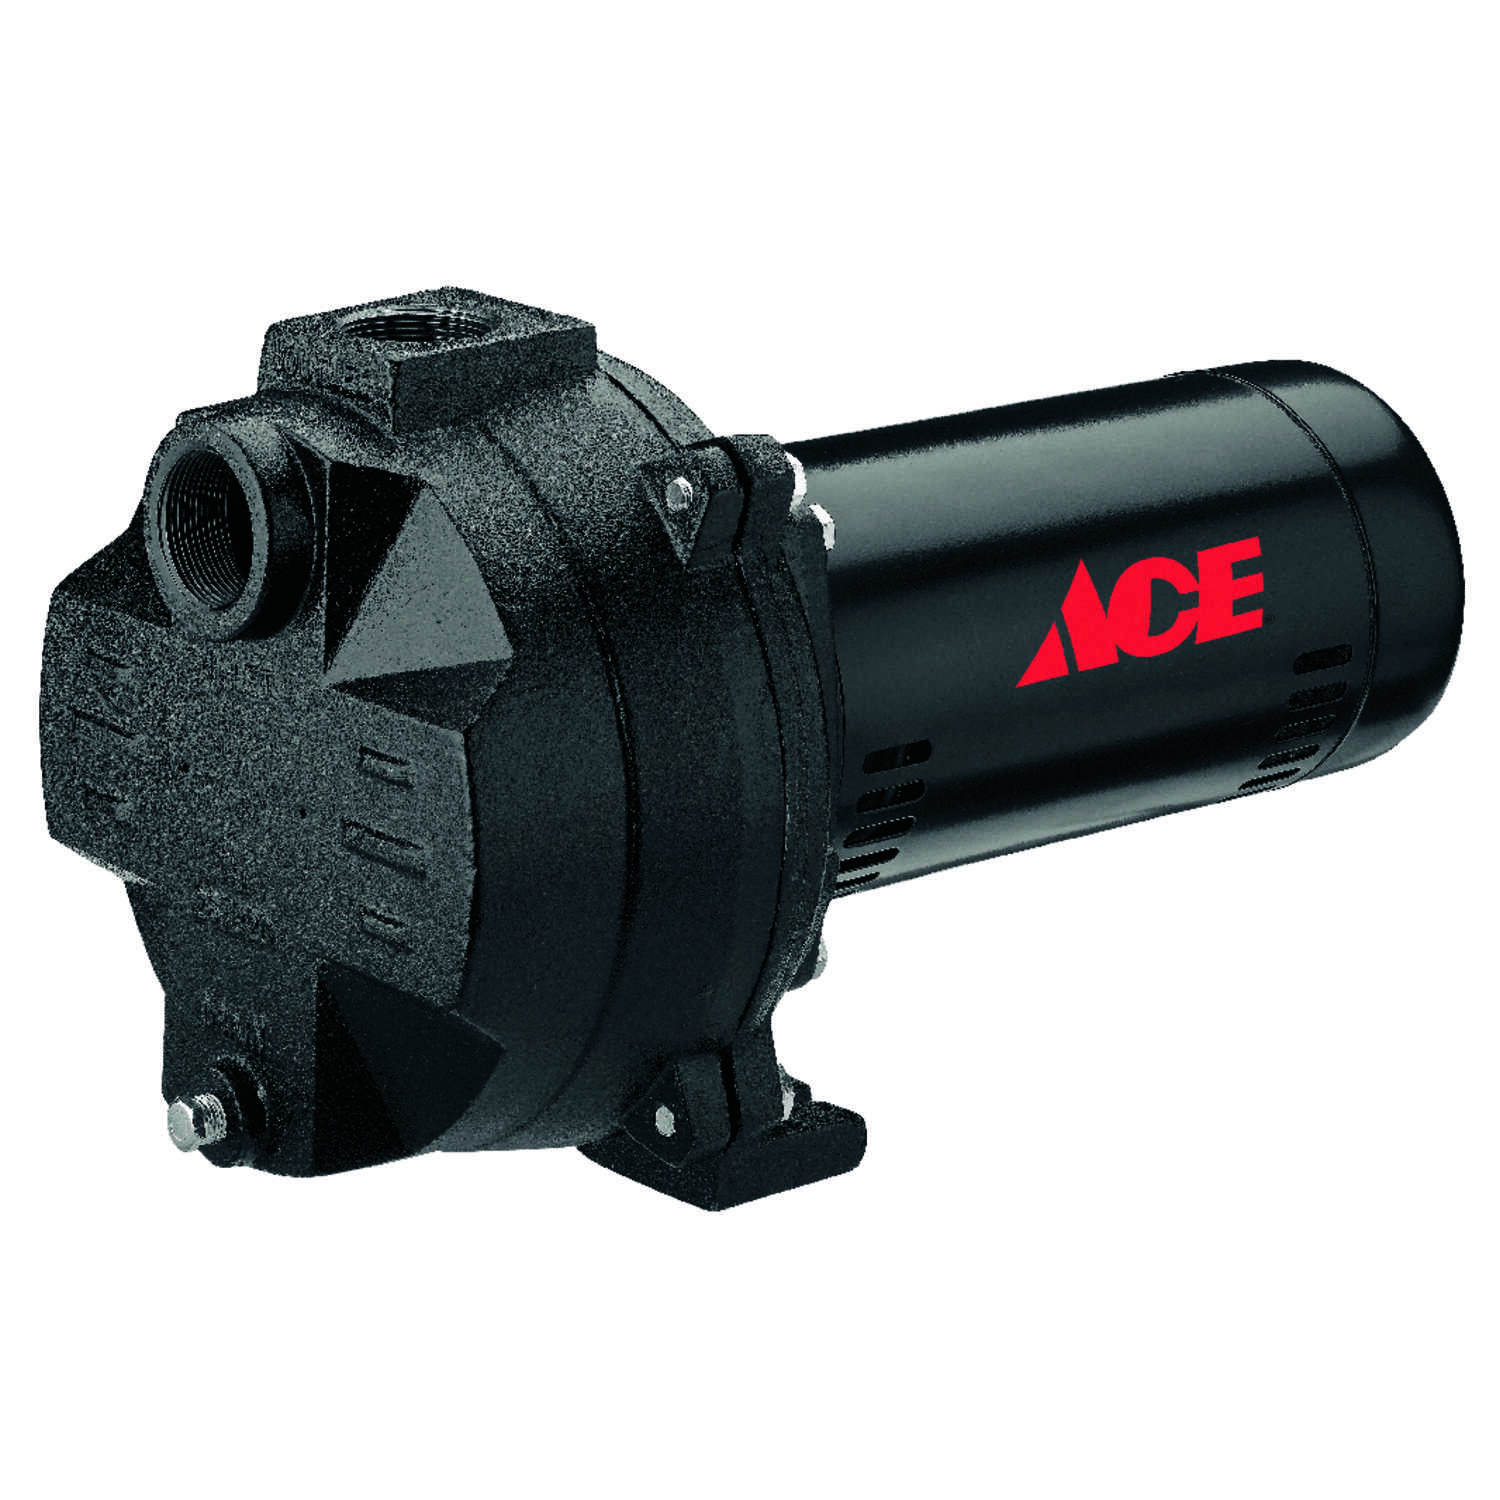 Ace  Cast Iron  Sprinkler Pump  1-1/2 hp 28  230 volts